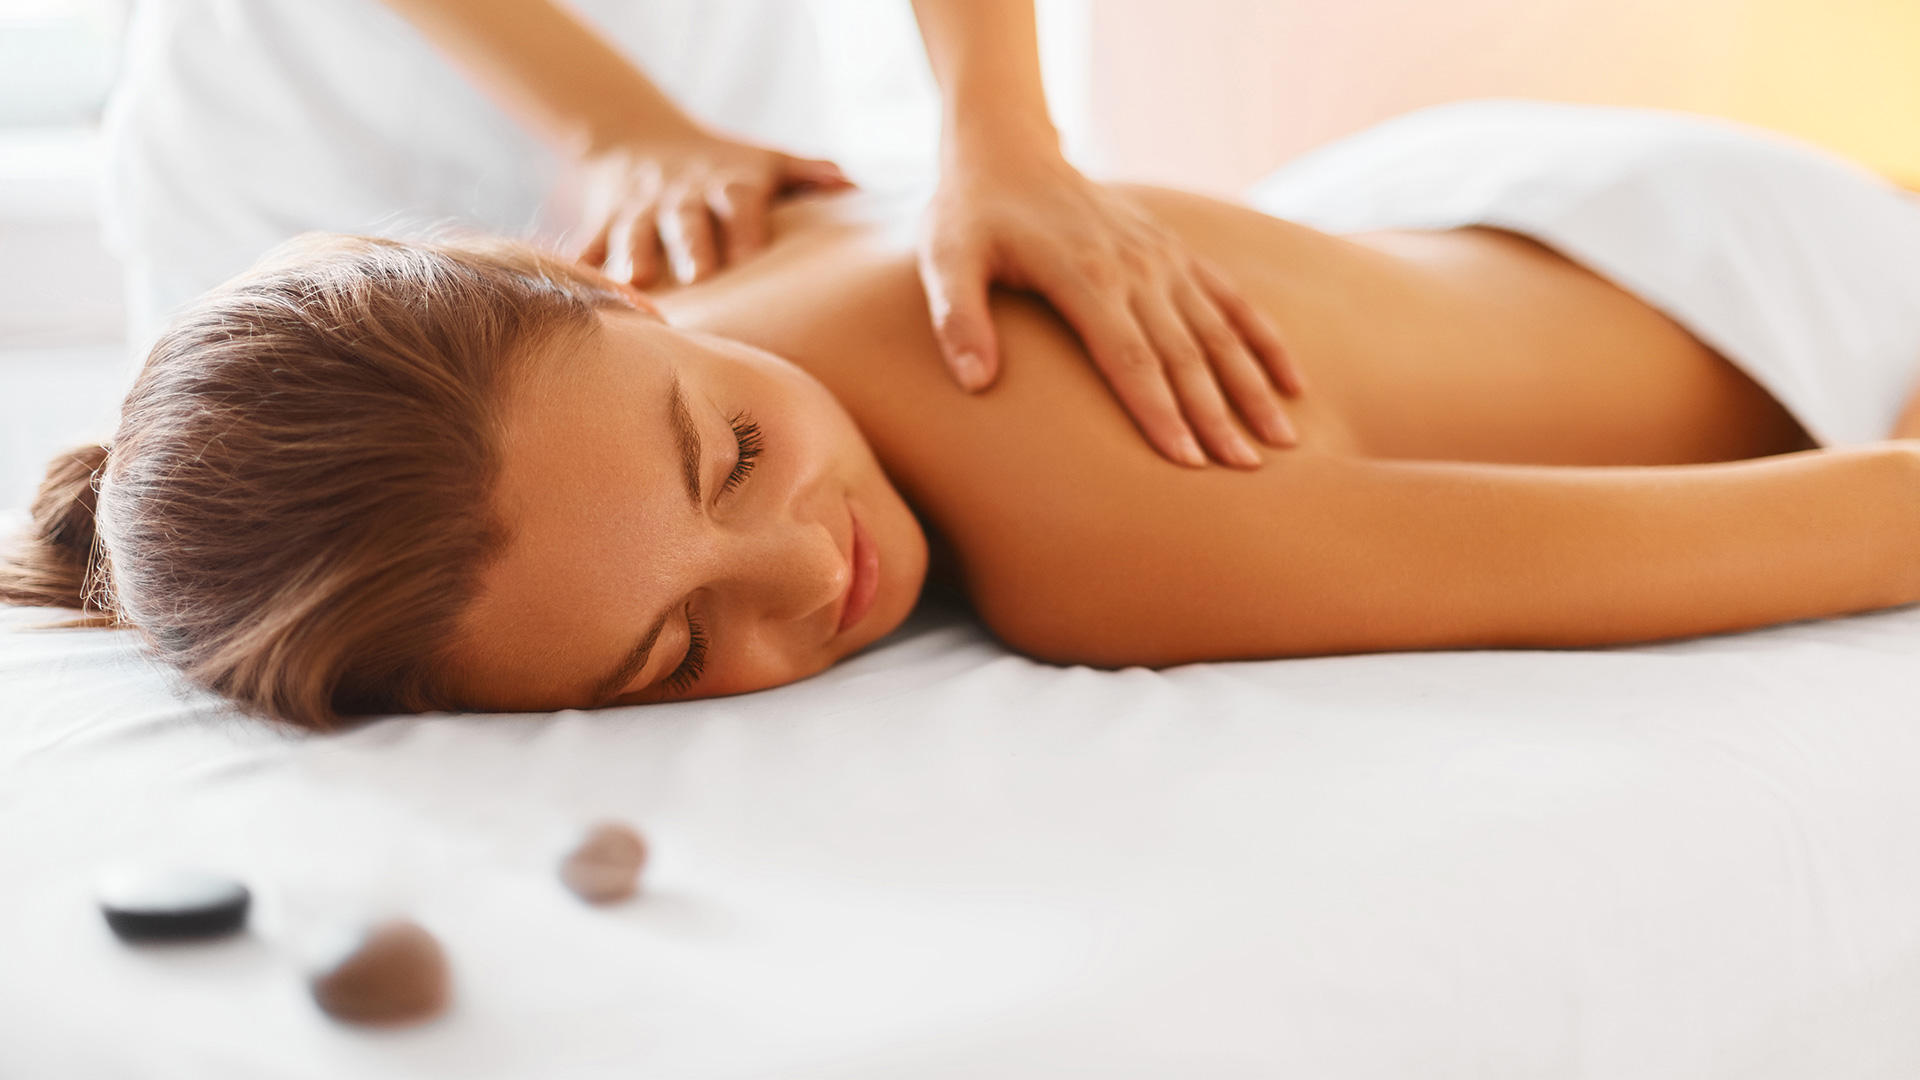 spa treatments and amenities in greater palm springs